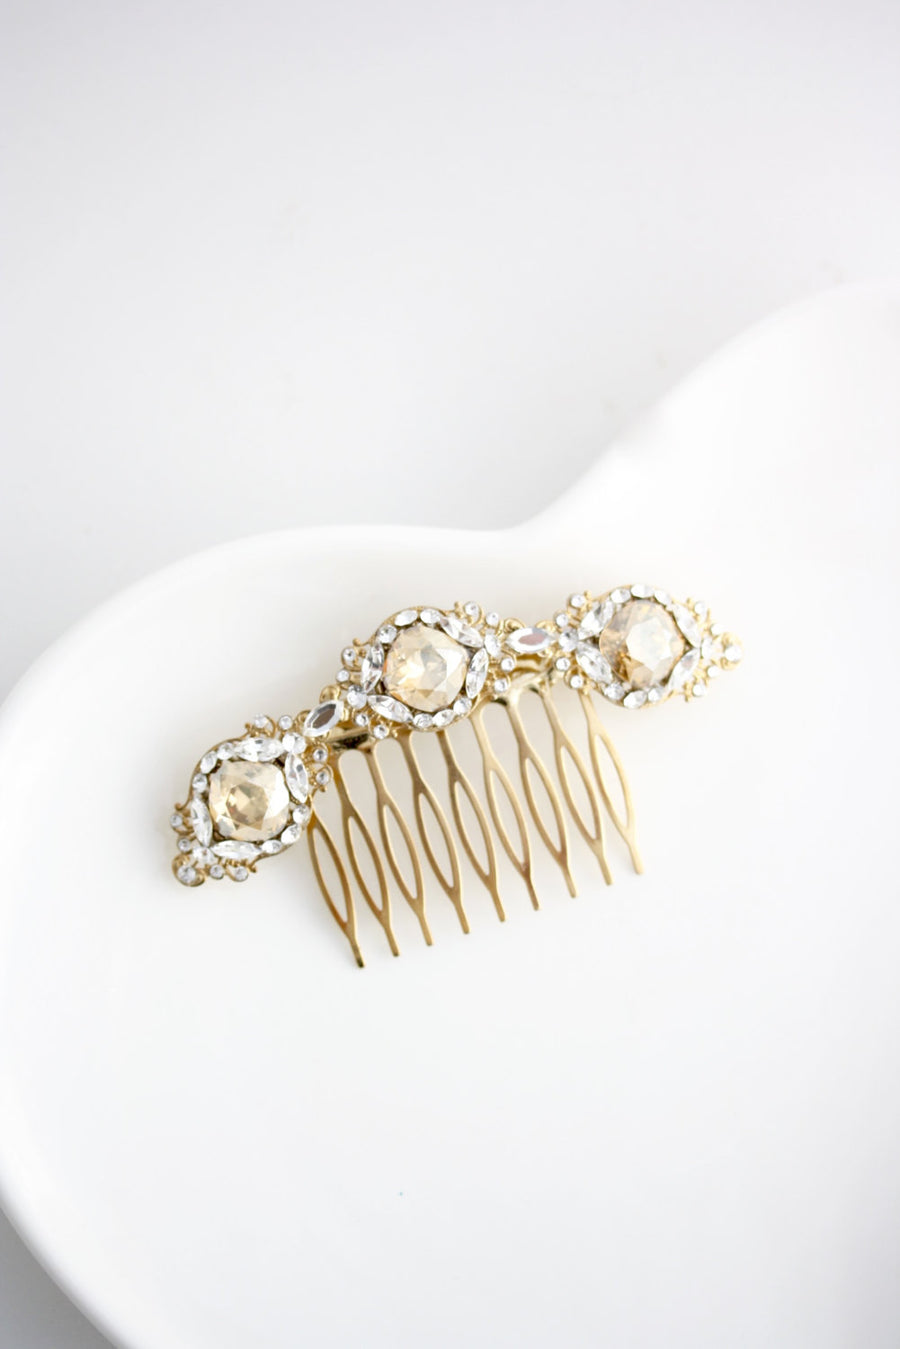 Estella Crystal Bridal Hair Comb - Lulu Splendor